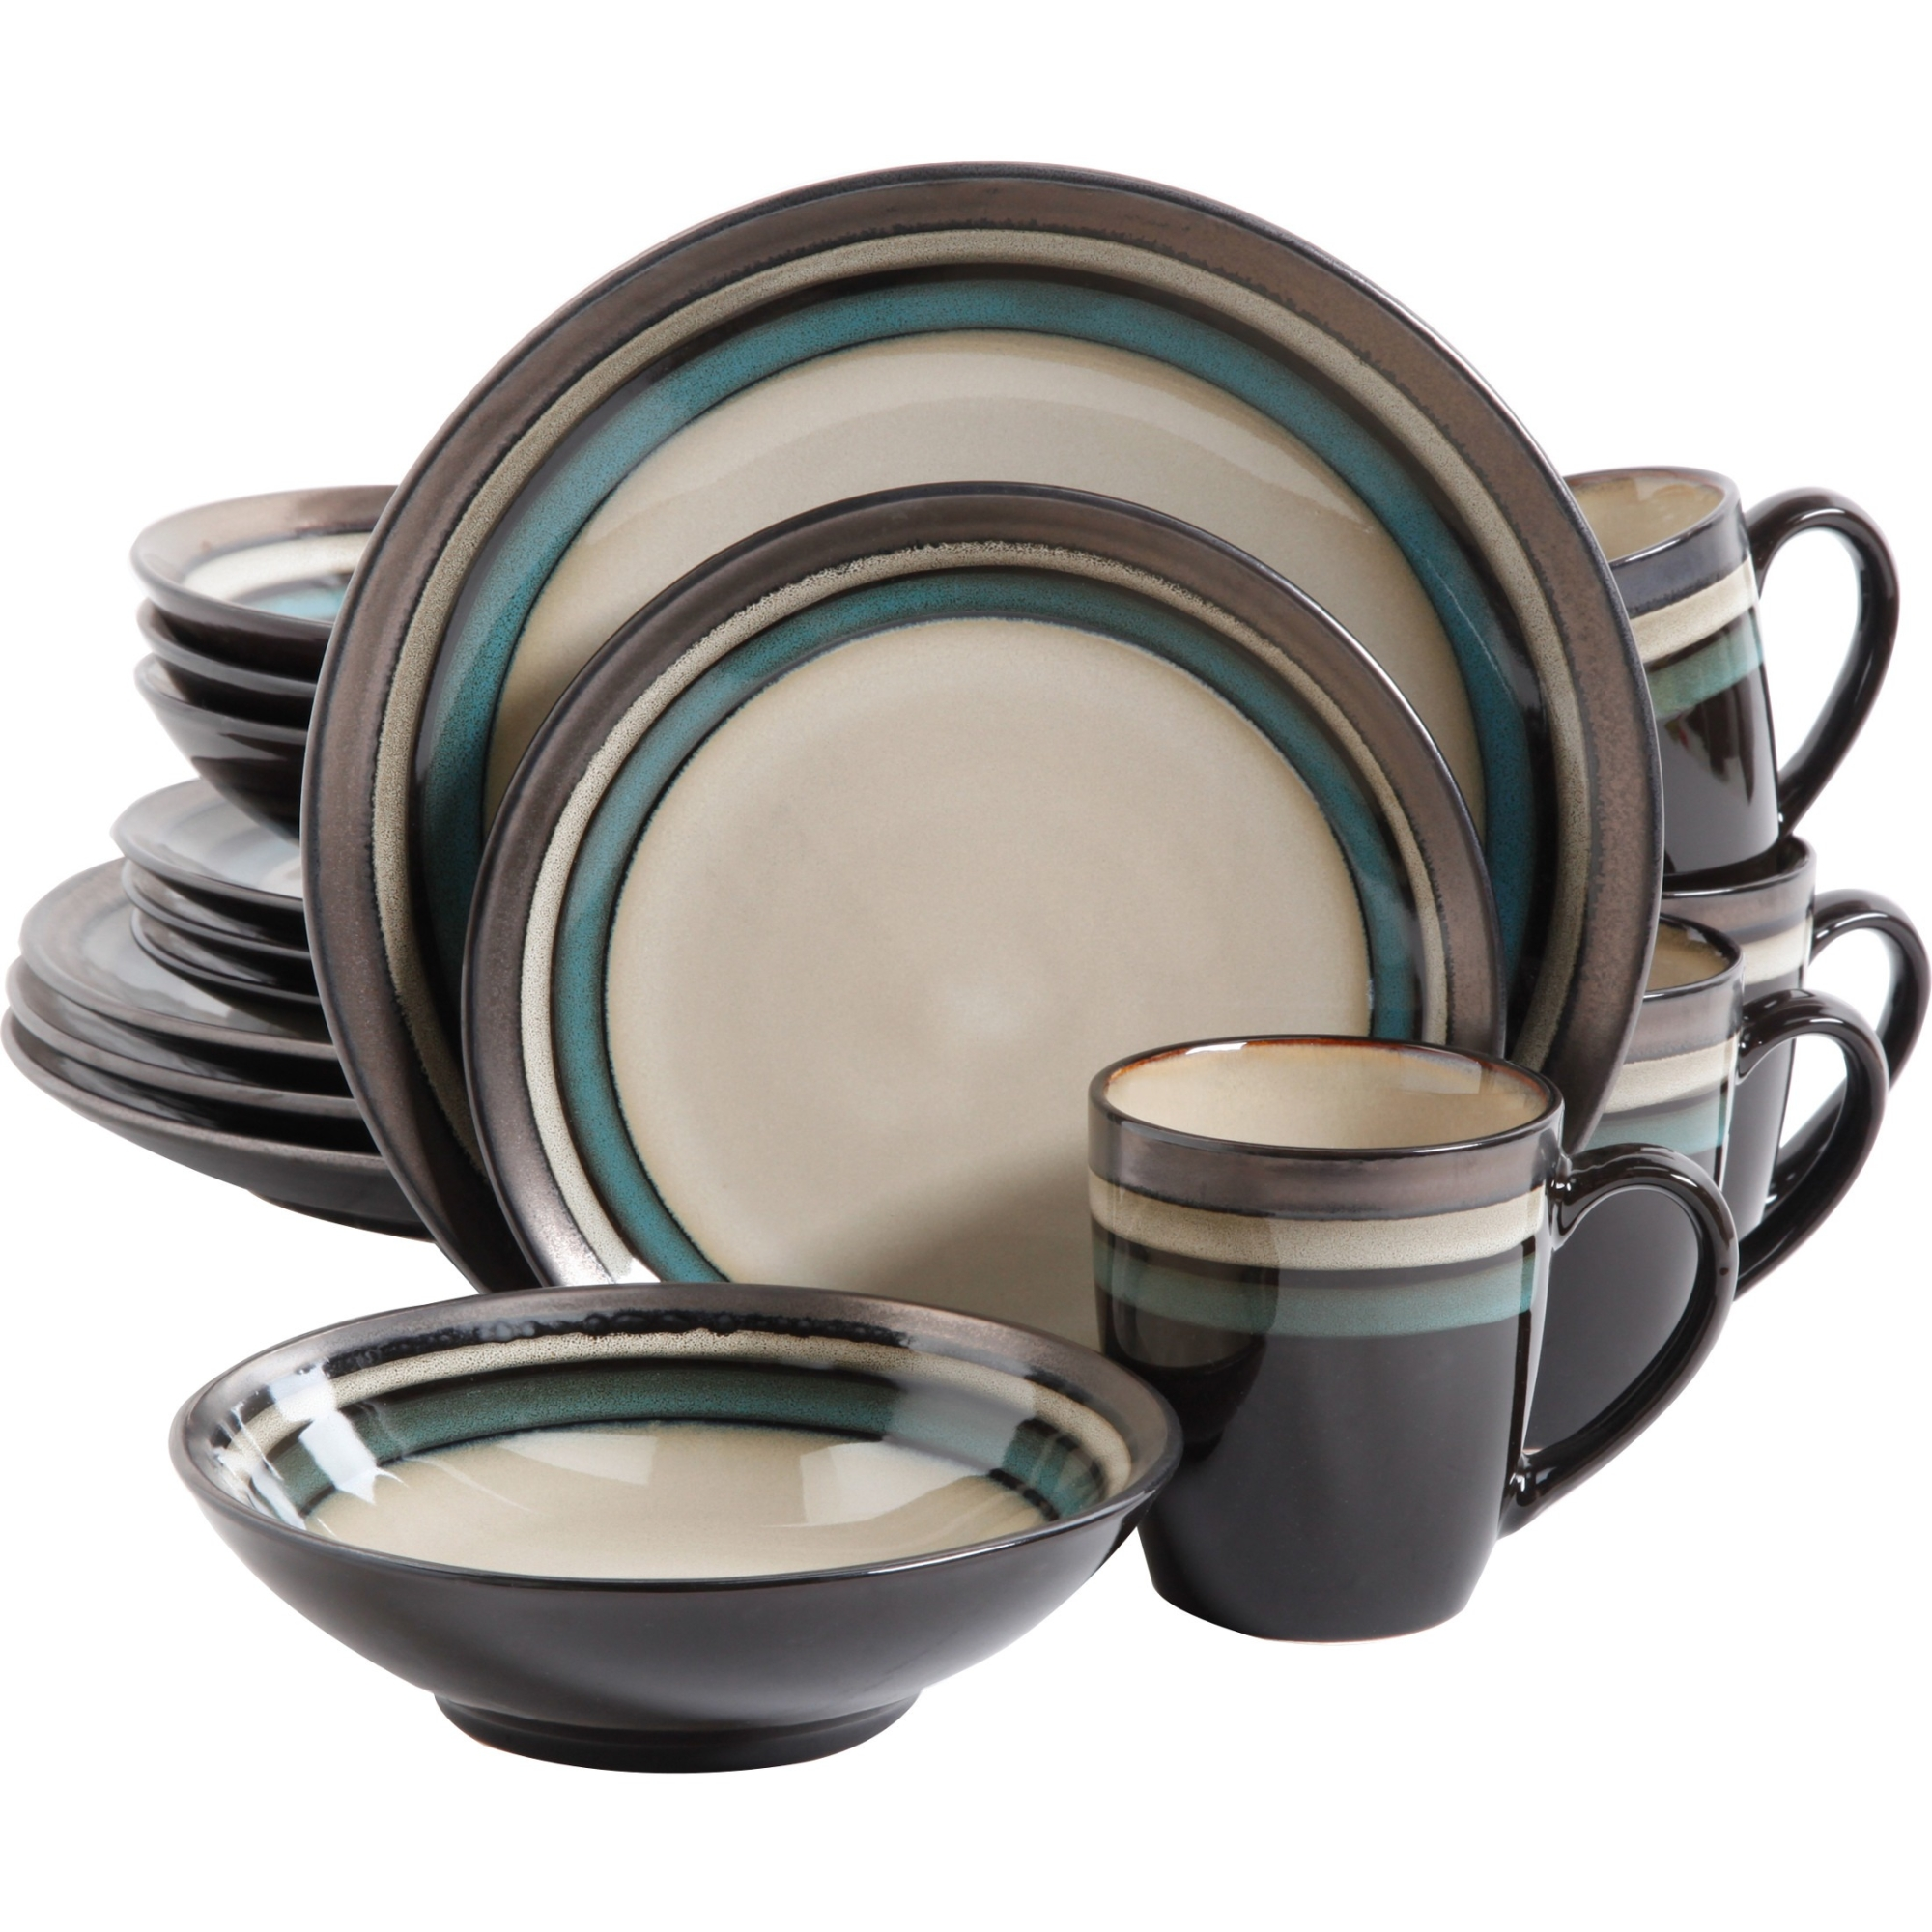 Excellent Dinnerware Set by Gibson Usa